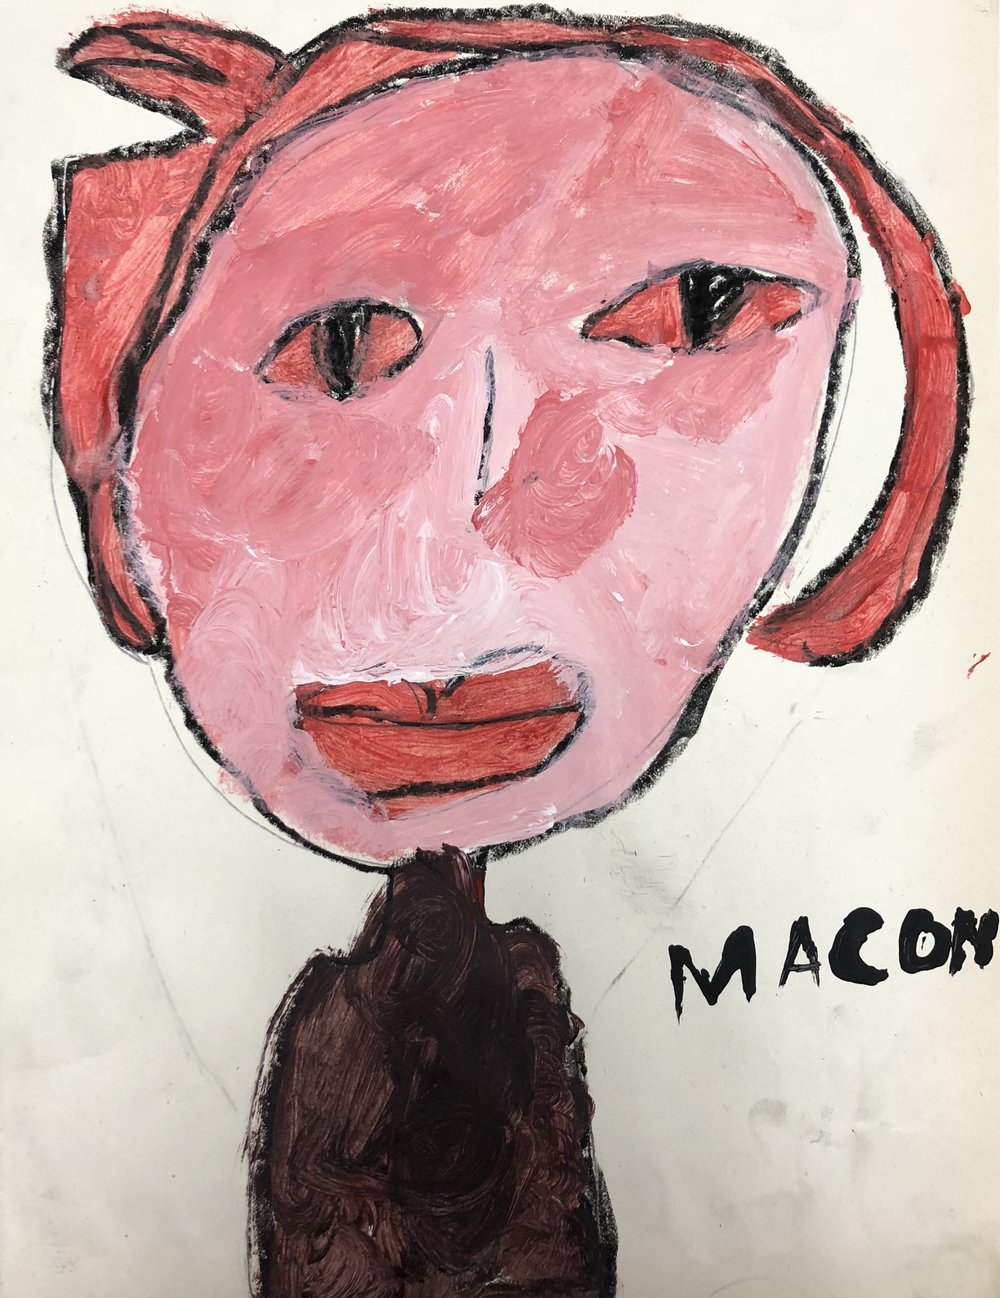 Picasso Rose/Blue Period Inspired Self-Portrait - 3rd Grade